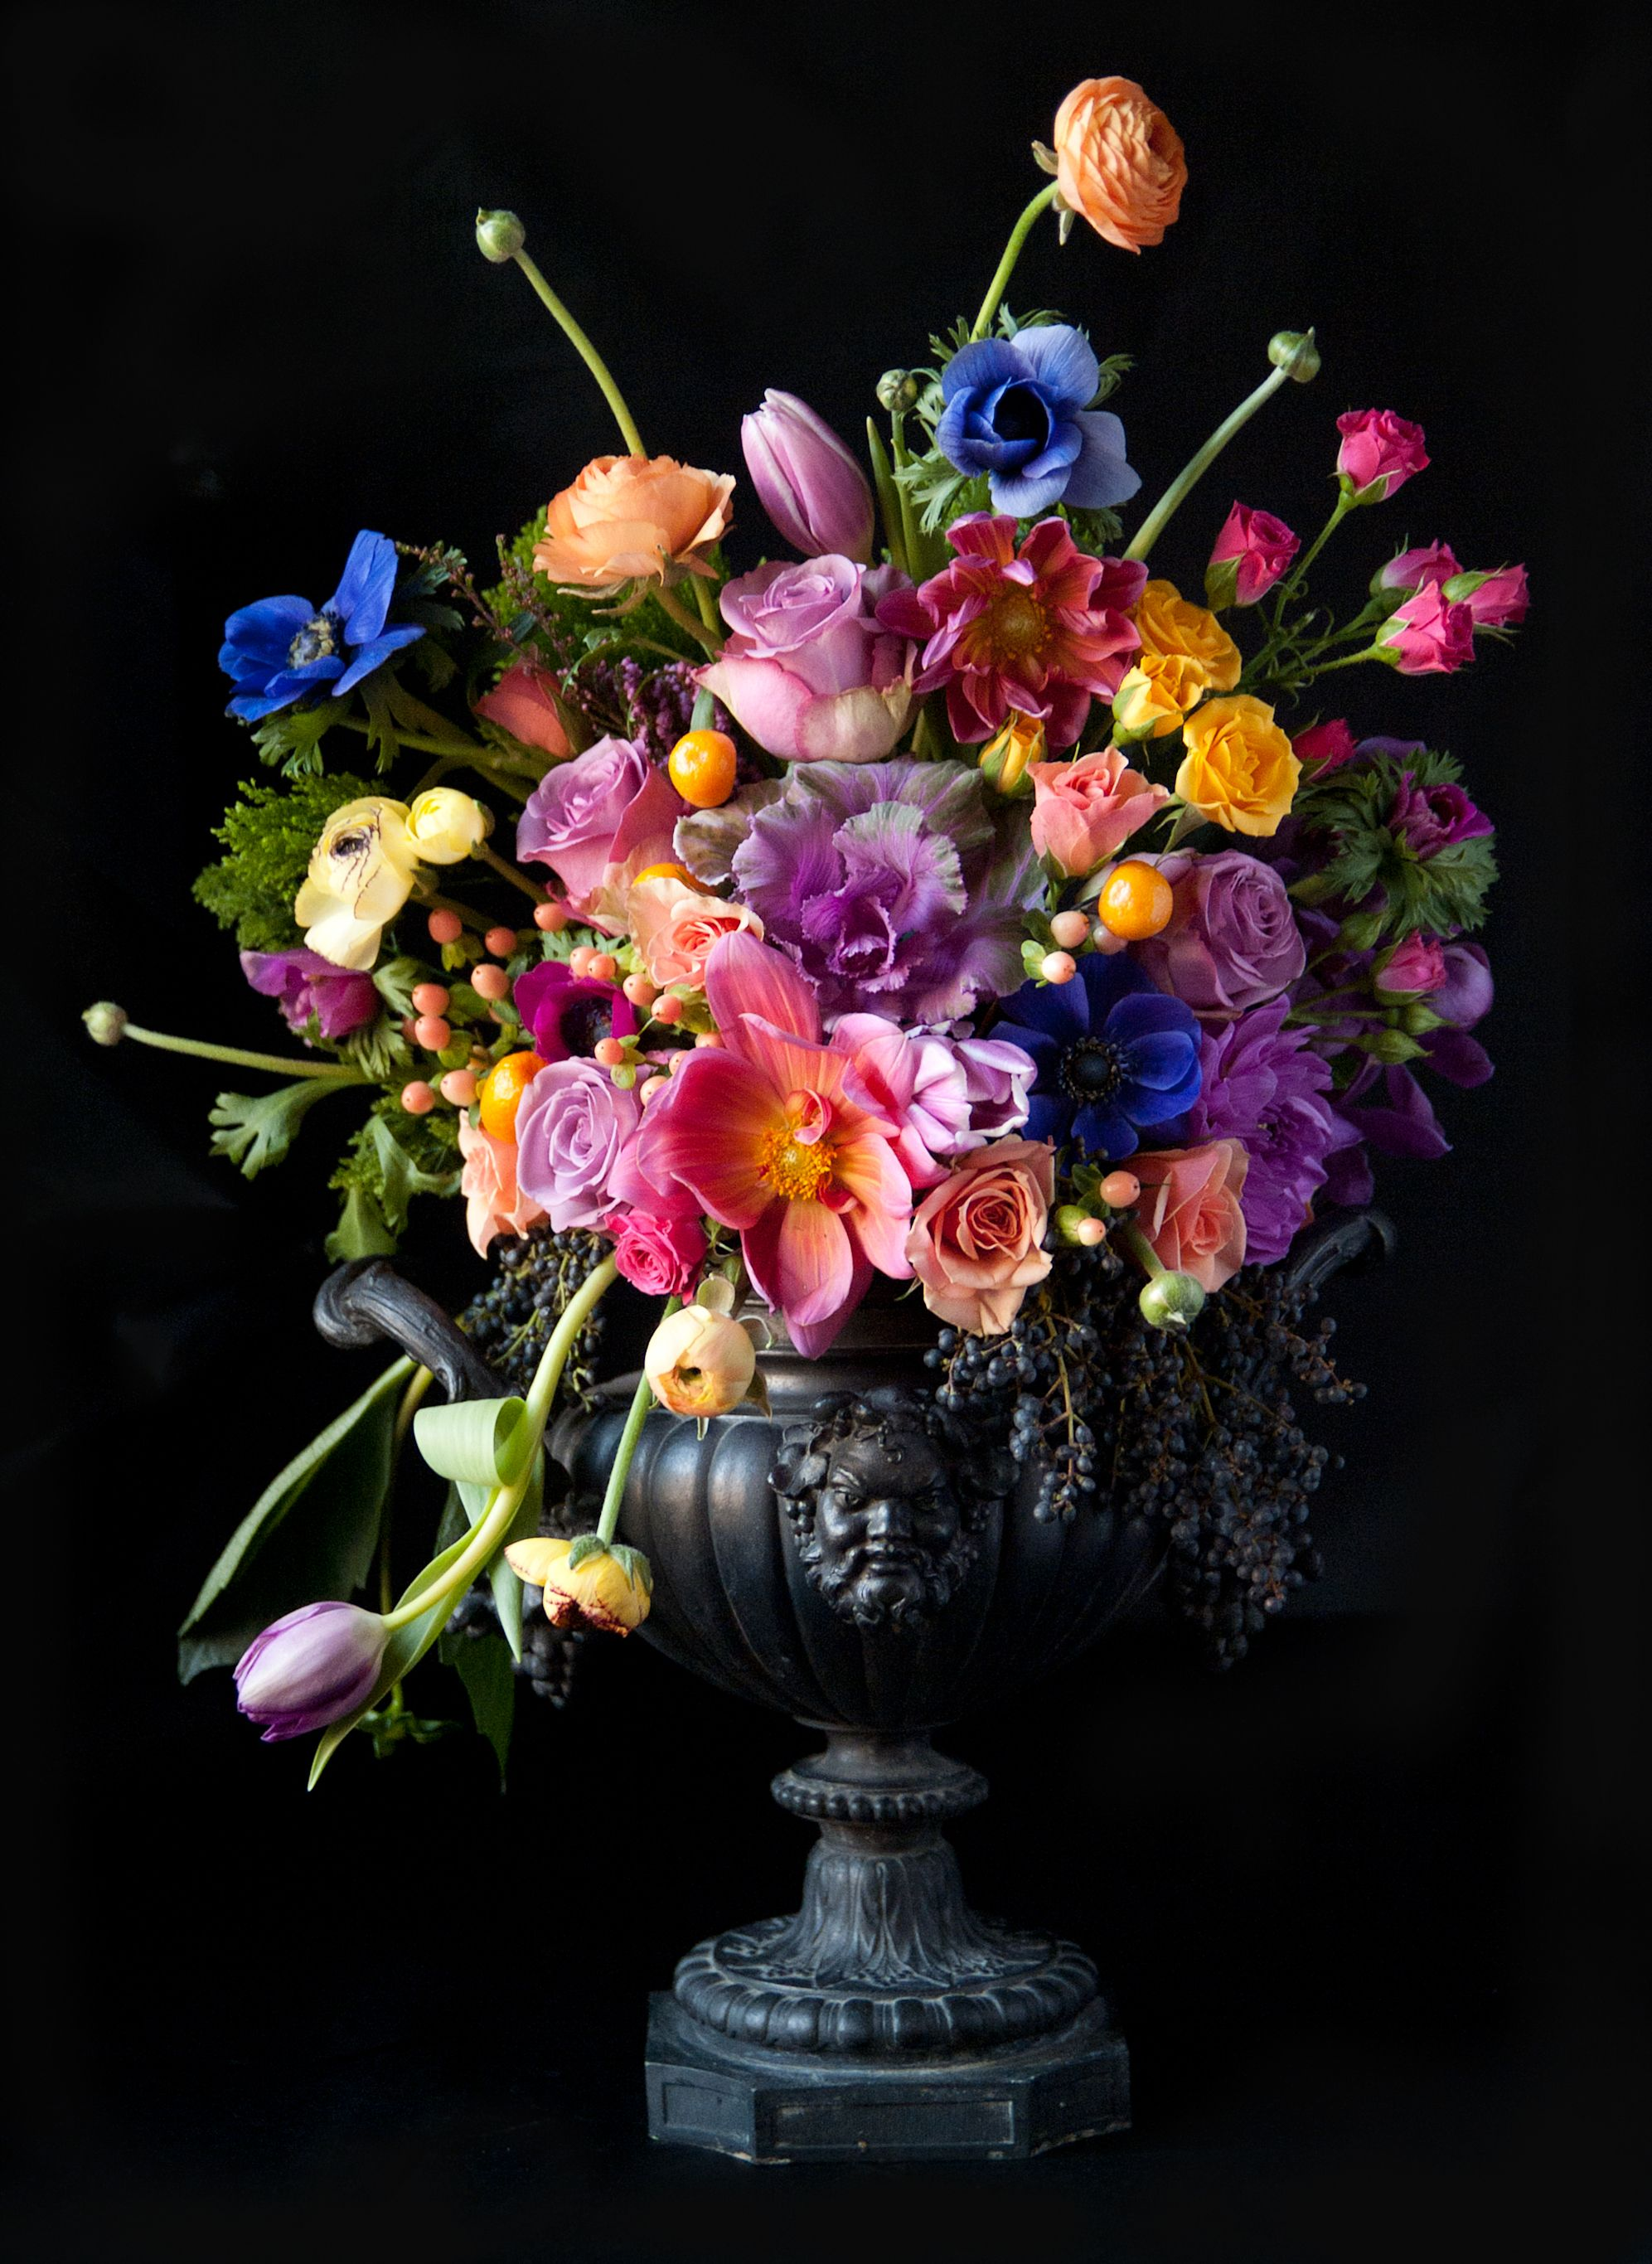 Pin by wild rose on dutch painting flower arranging